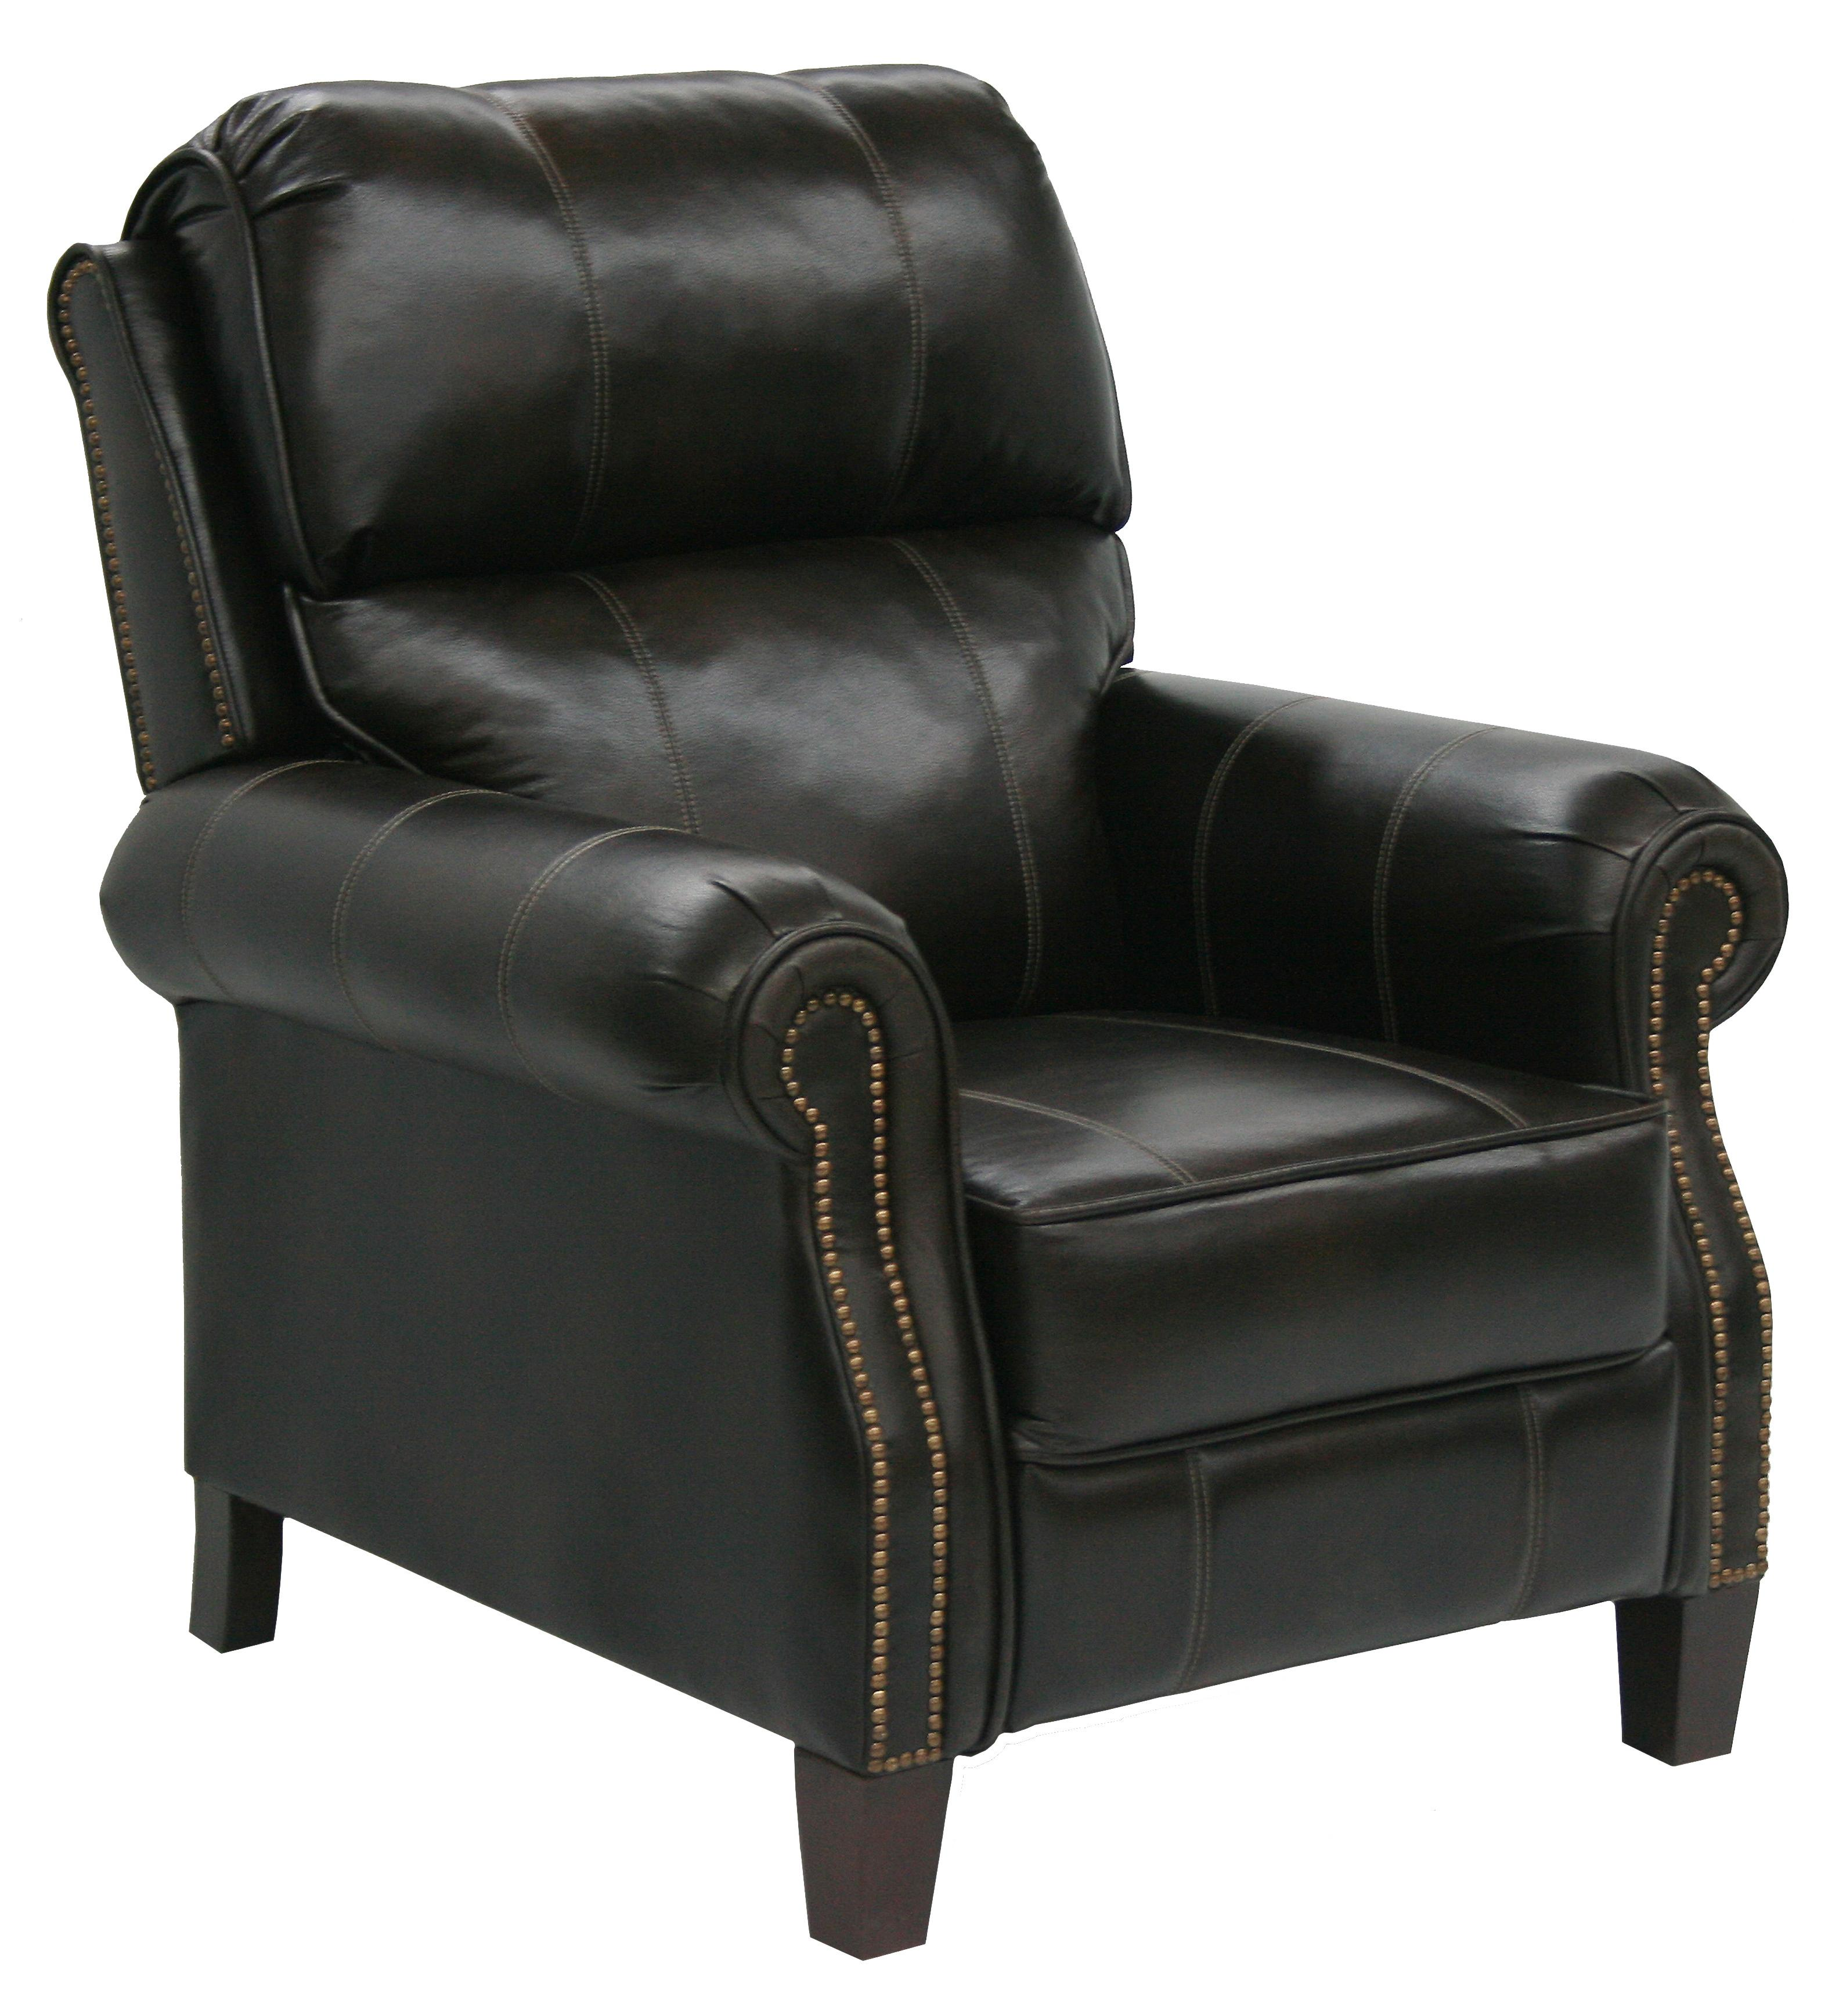 Faux Leather High Leg Recliner With Extended Ottoman In Traditional Den  Room Style